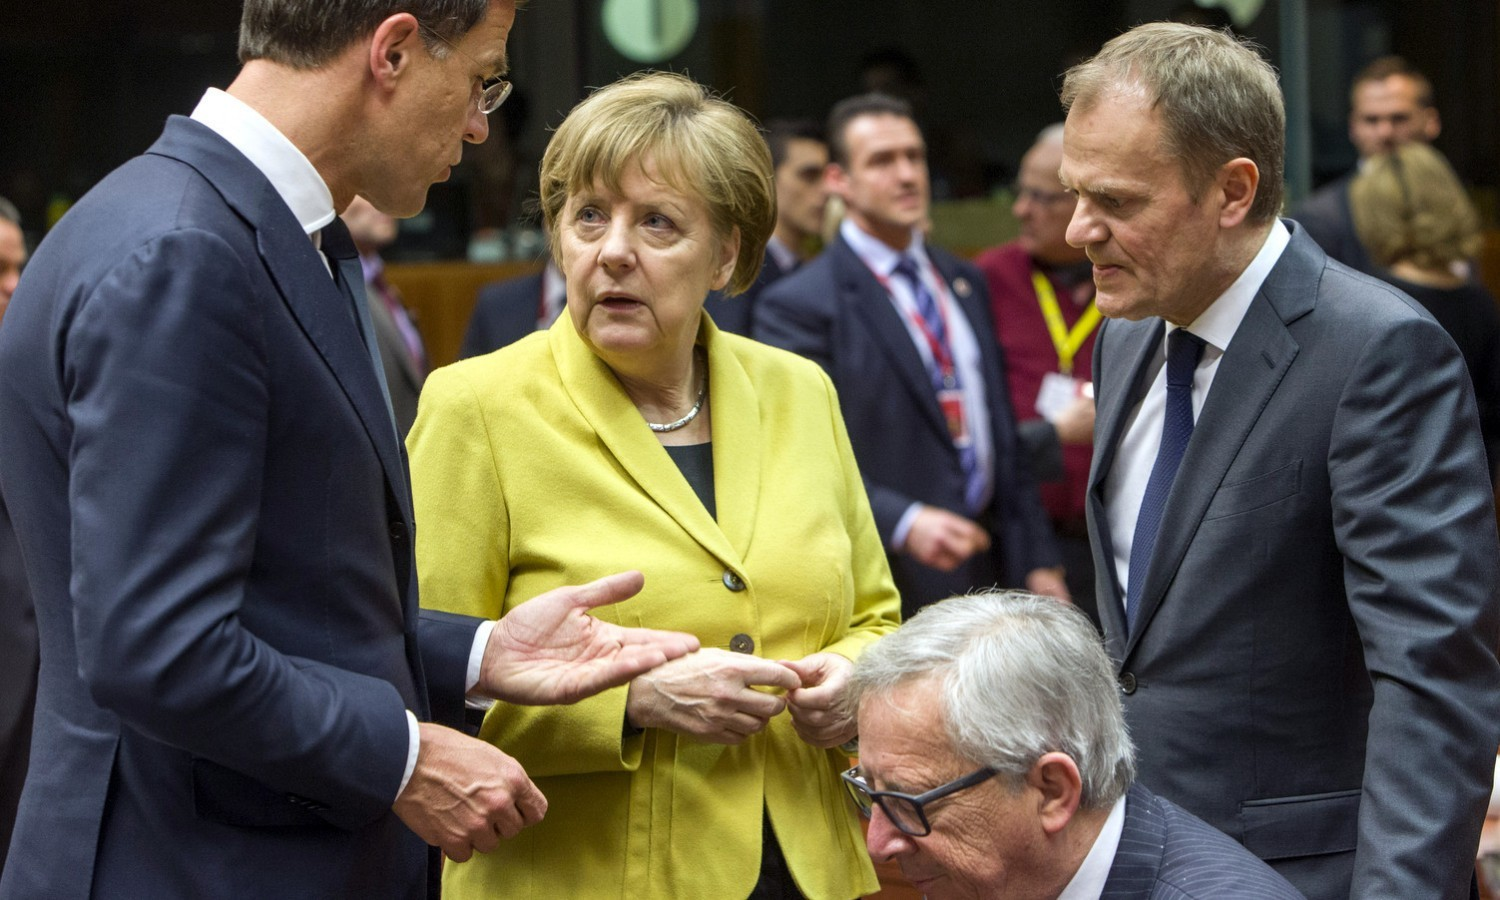 Rutte, Merkel, Tusk and Juncker at European Council in Brussels on March 18, 2016 / tvnewsroom.consilium.europa.eu